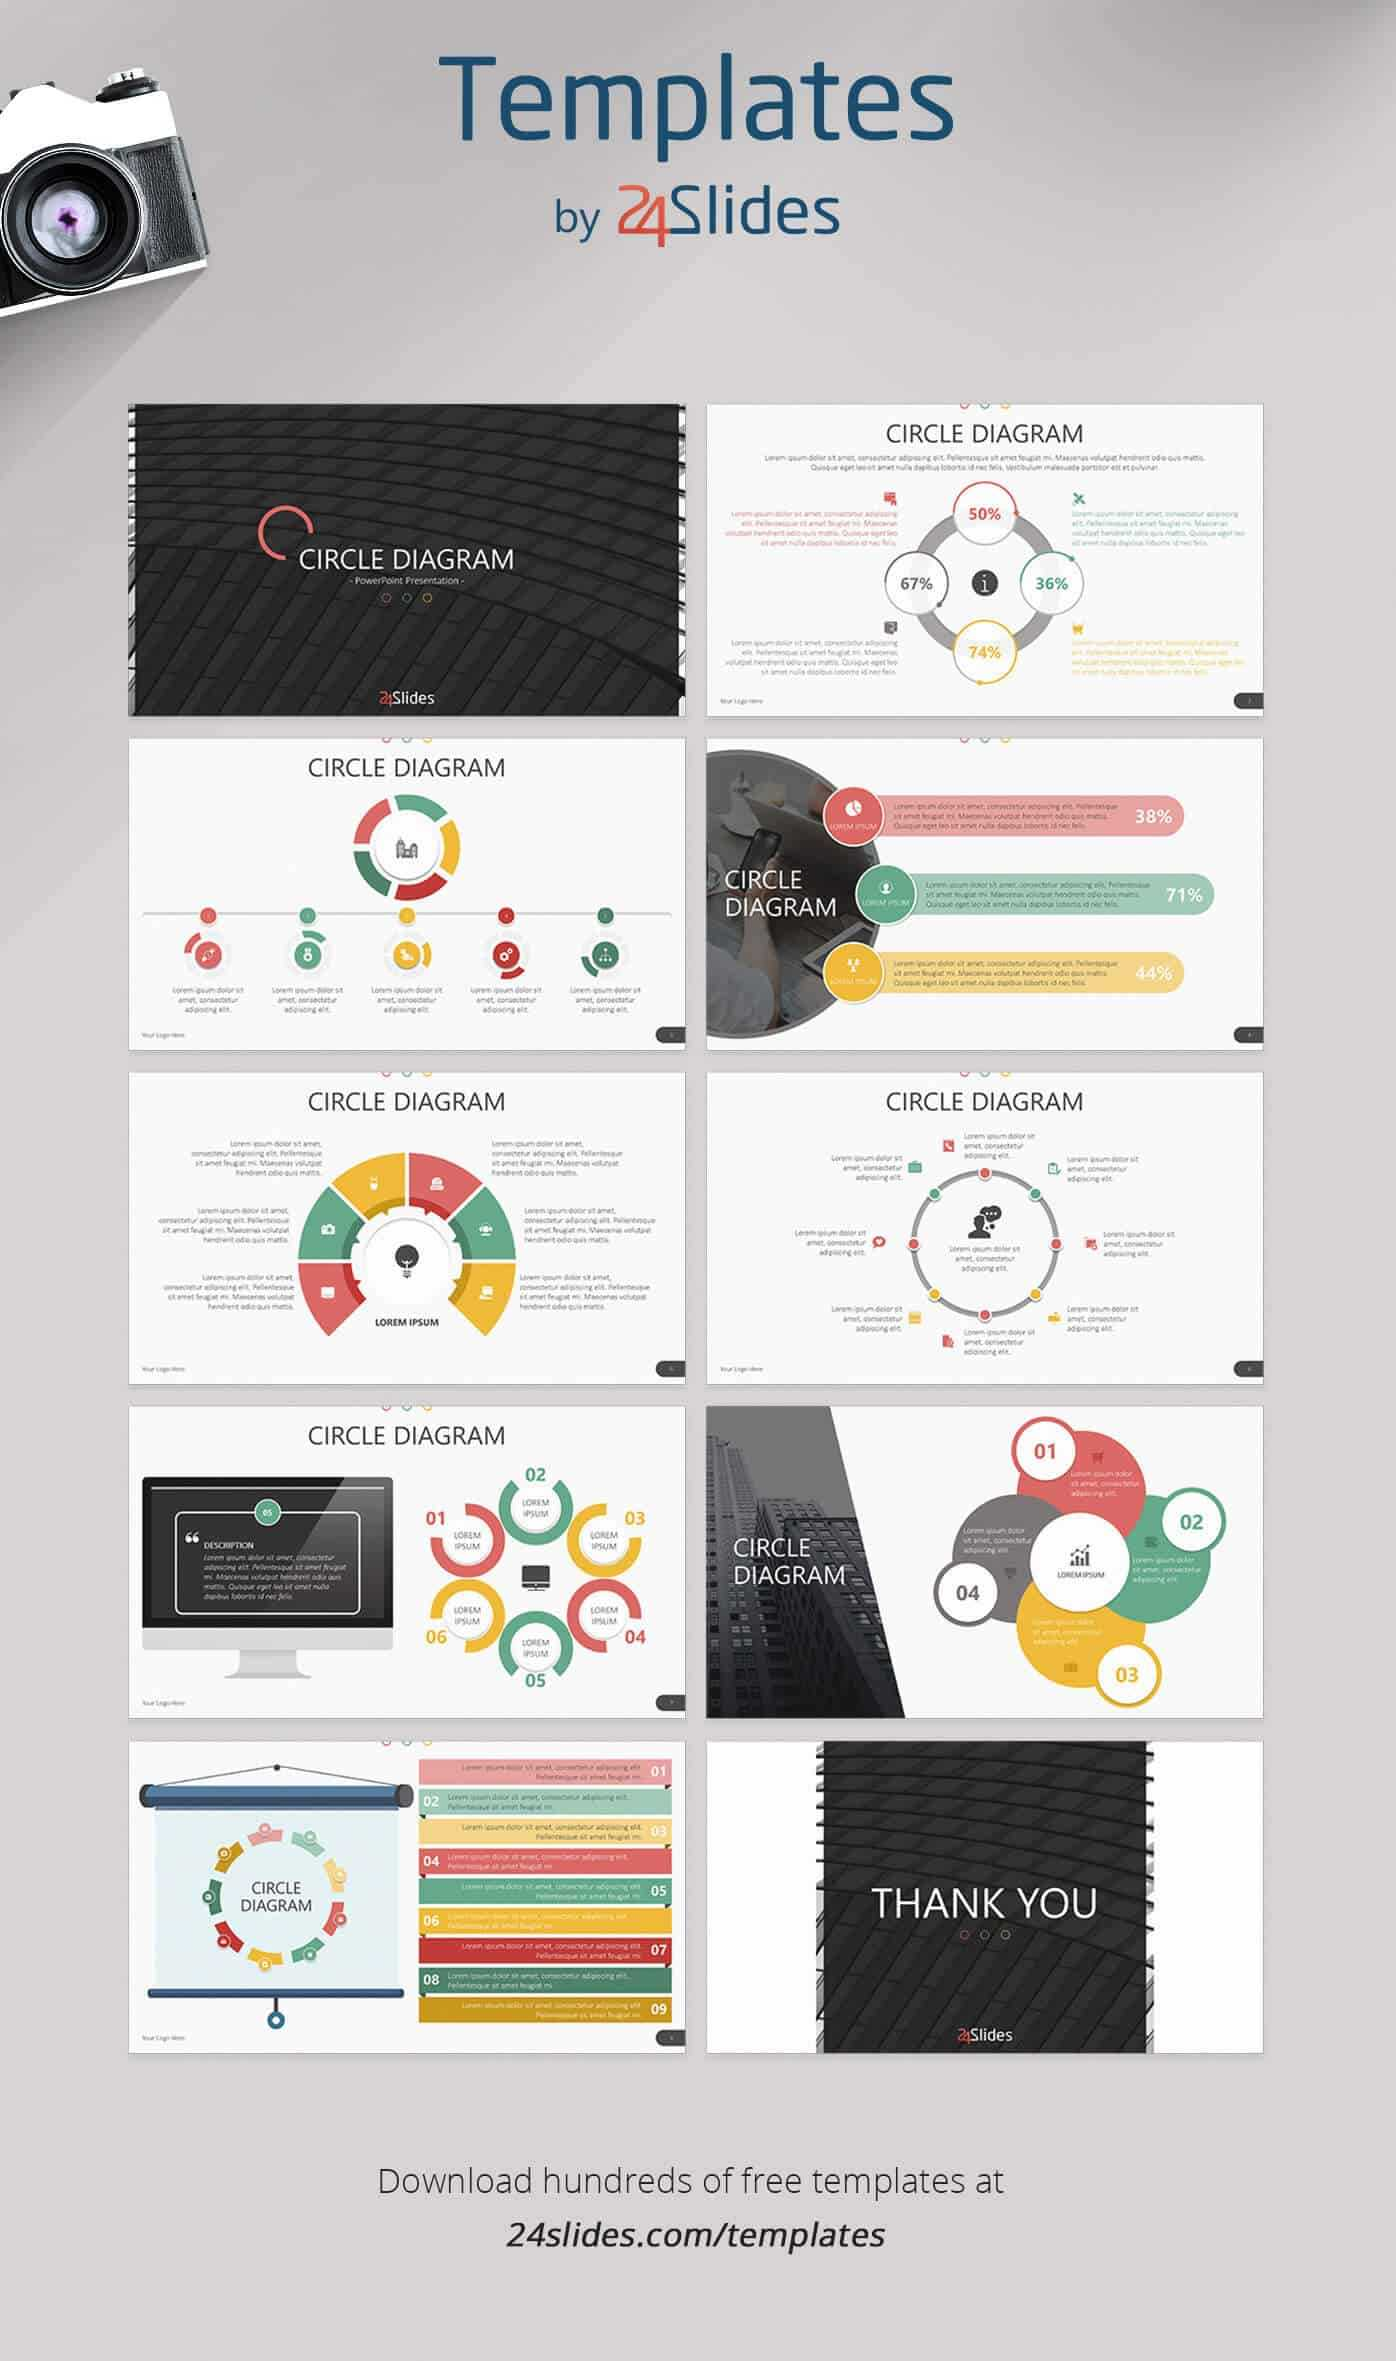 15 Fun And Colorful Free Powerpoint Templates | Present Better Intended For Powerpoint Photo Slideshow Template